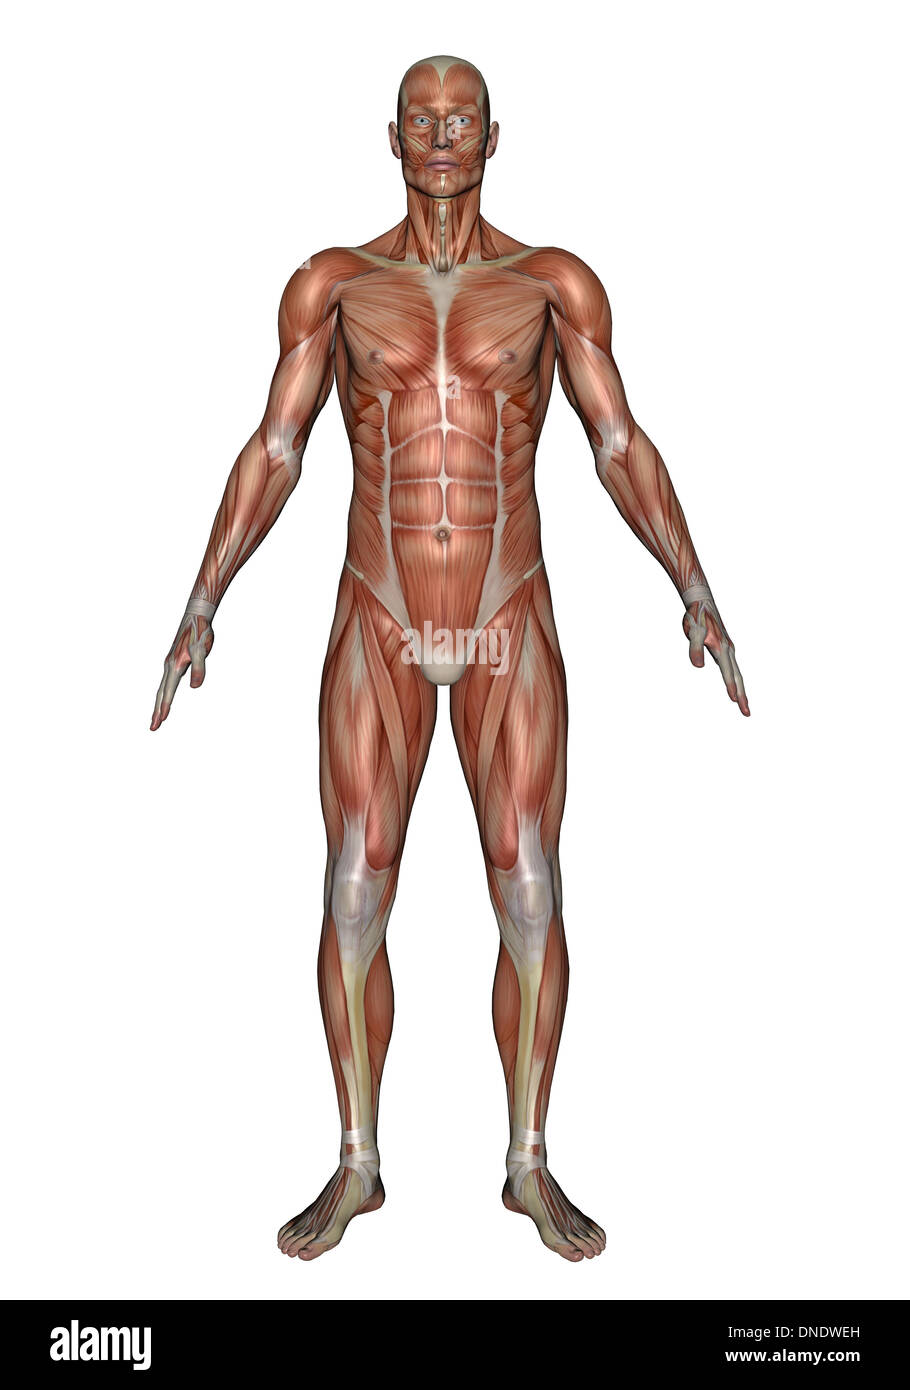 Anatomy of male muscular system, front view. Stock Photo